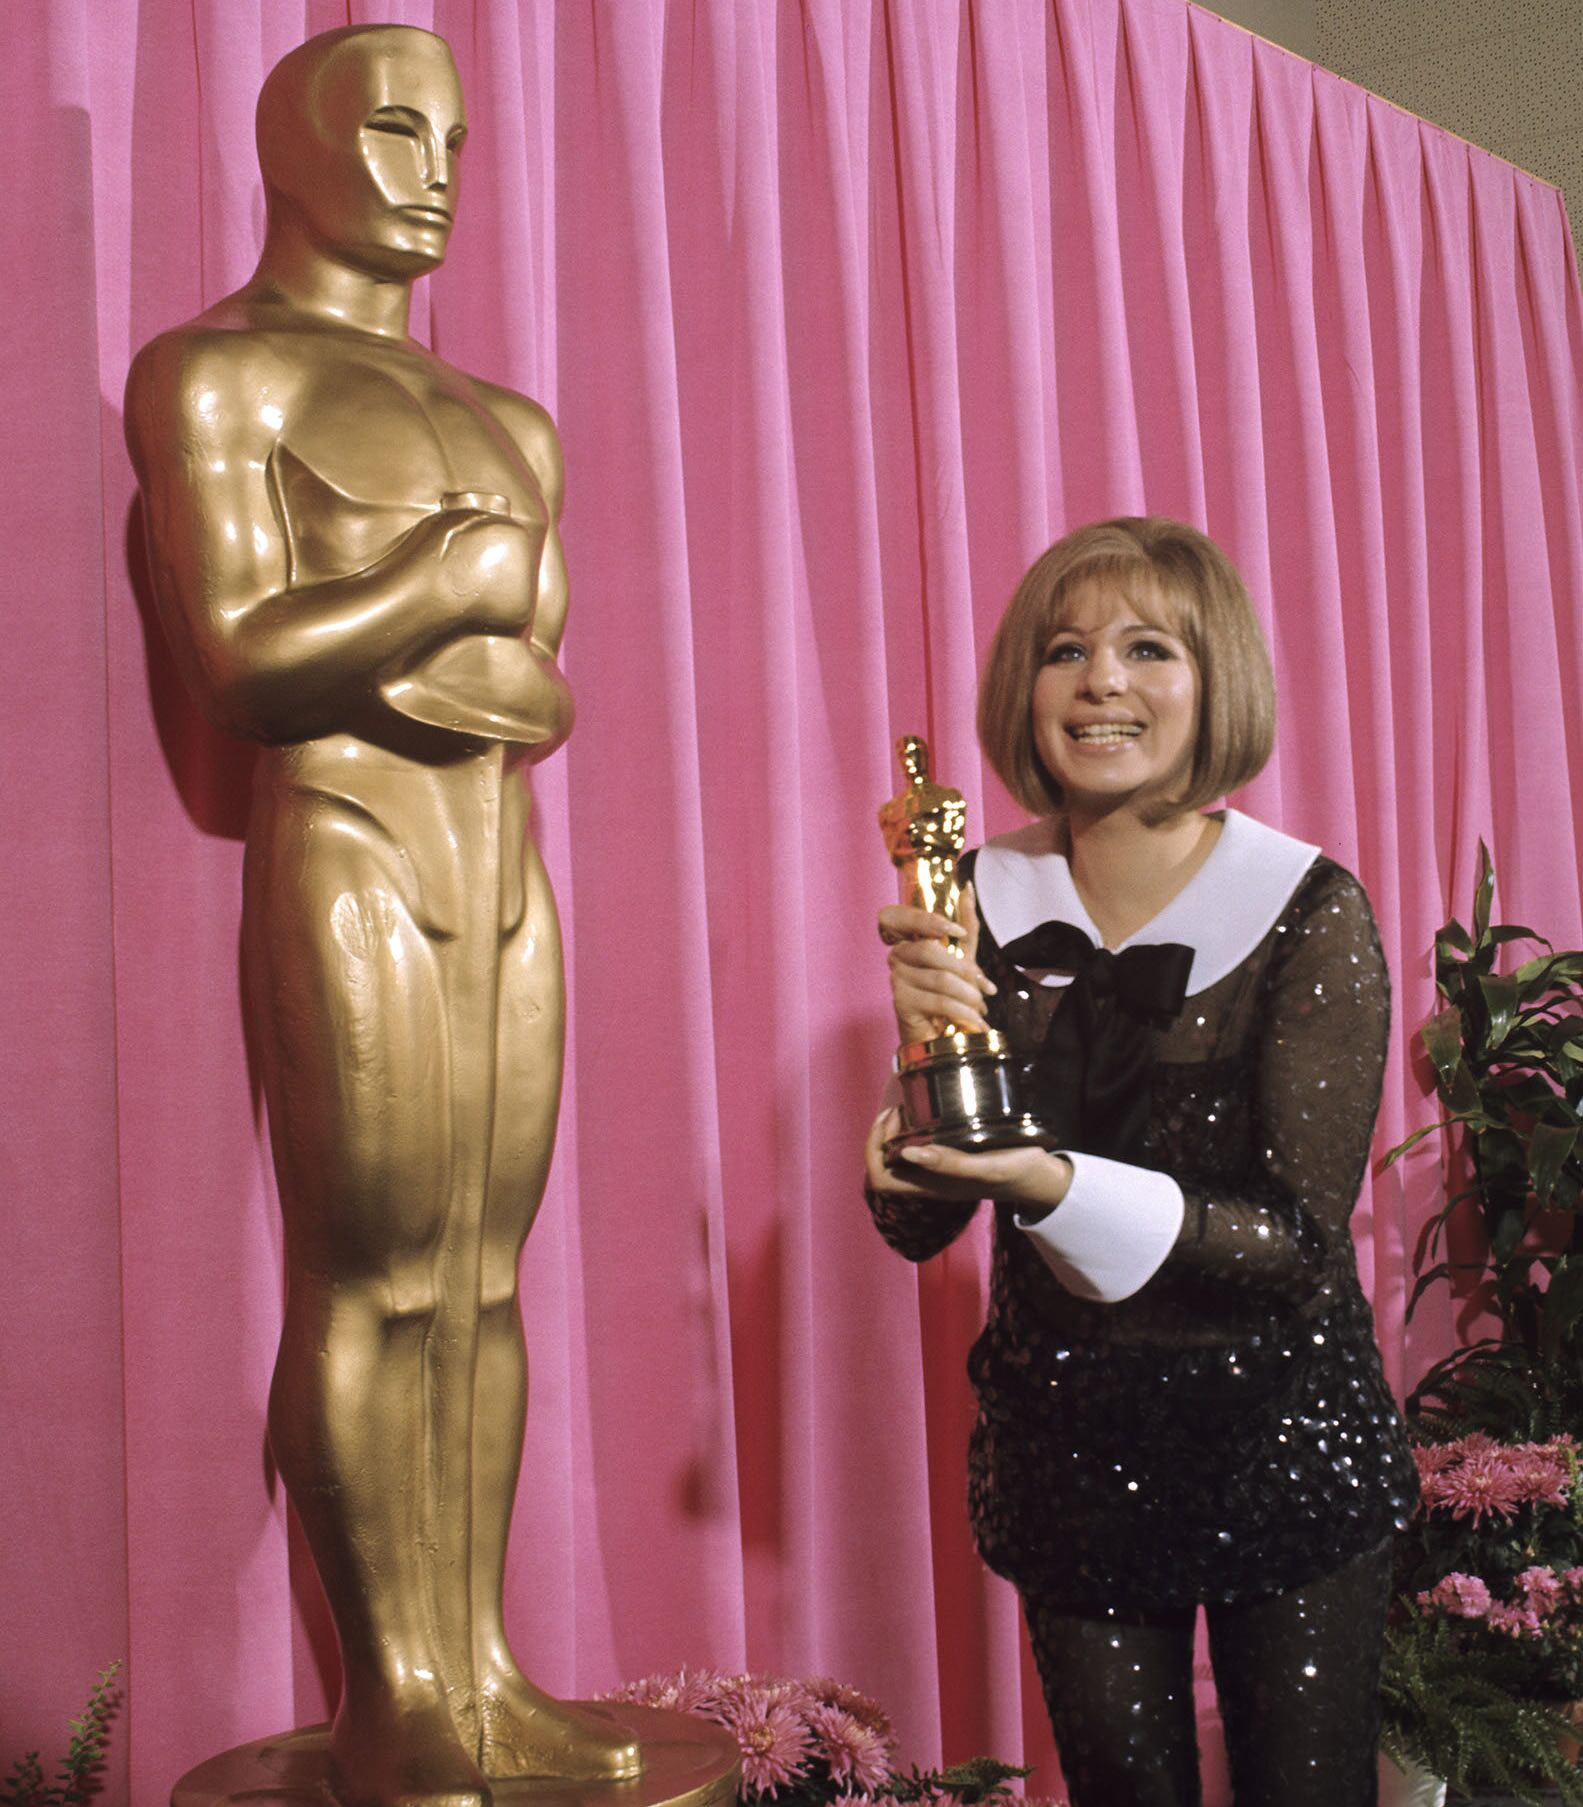 Best Actress Winner for Funny Girl